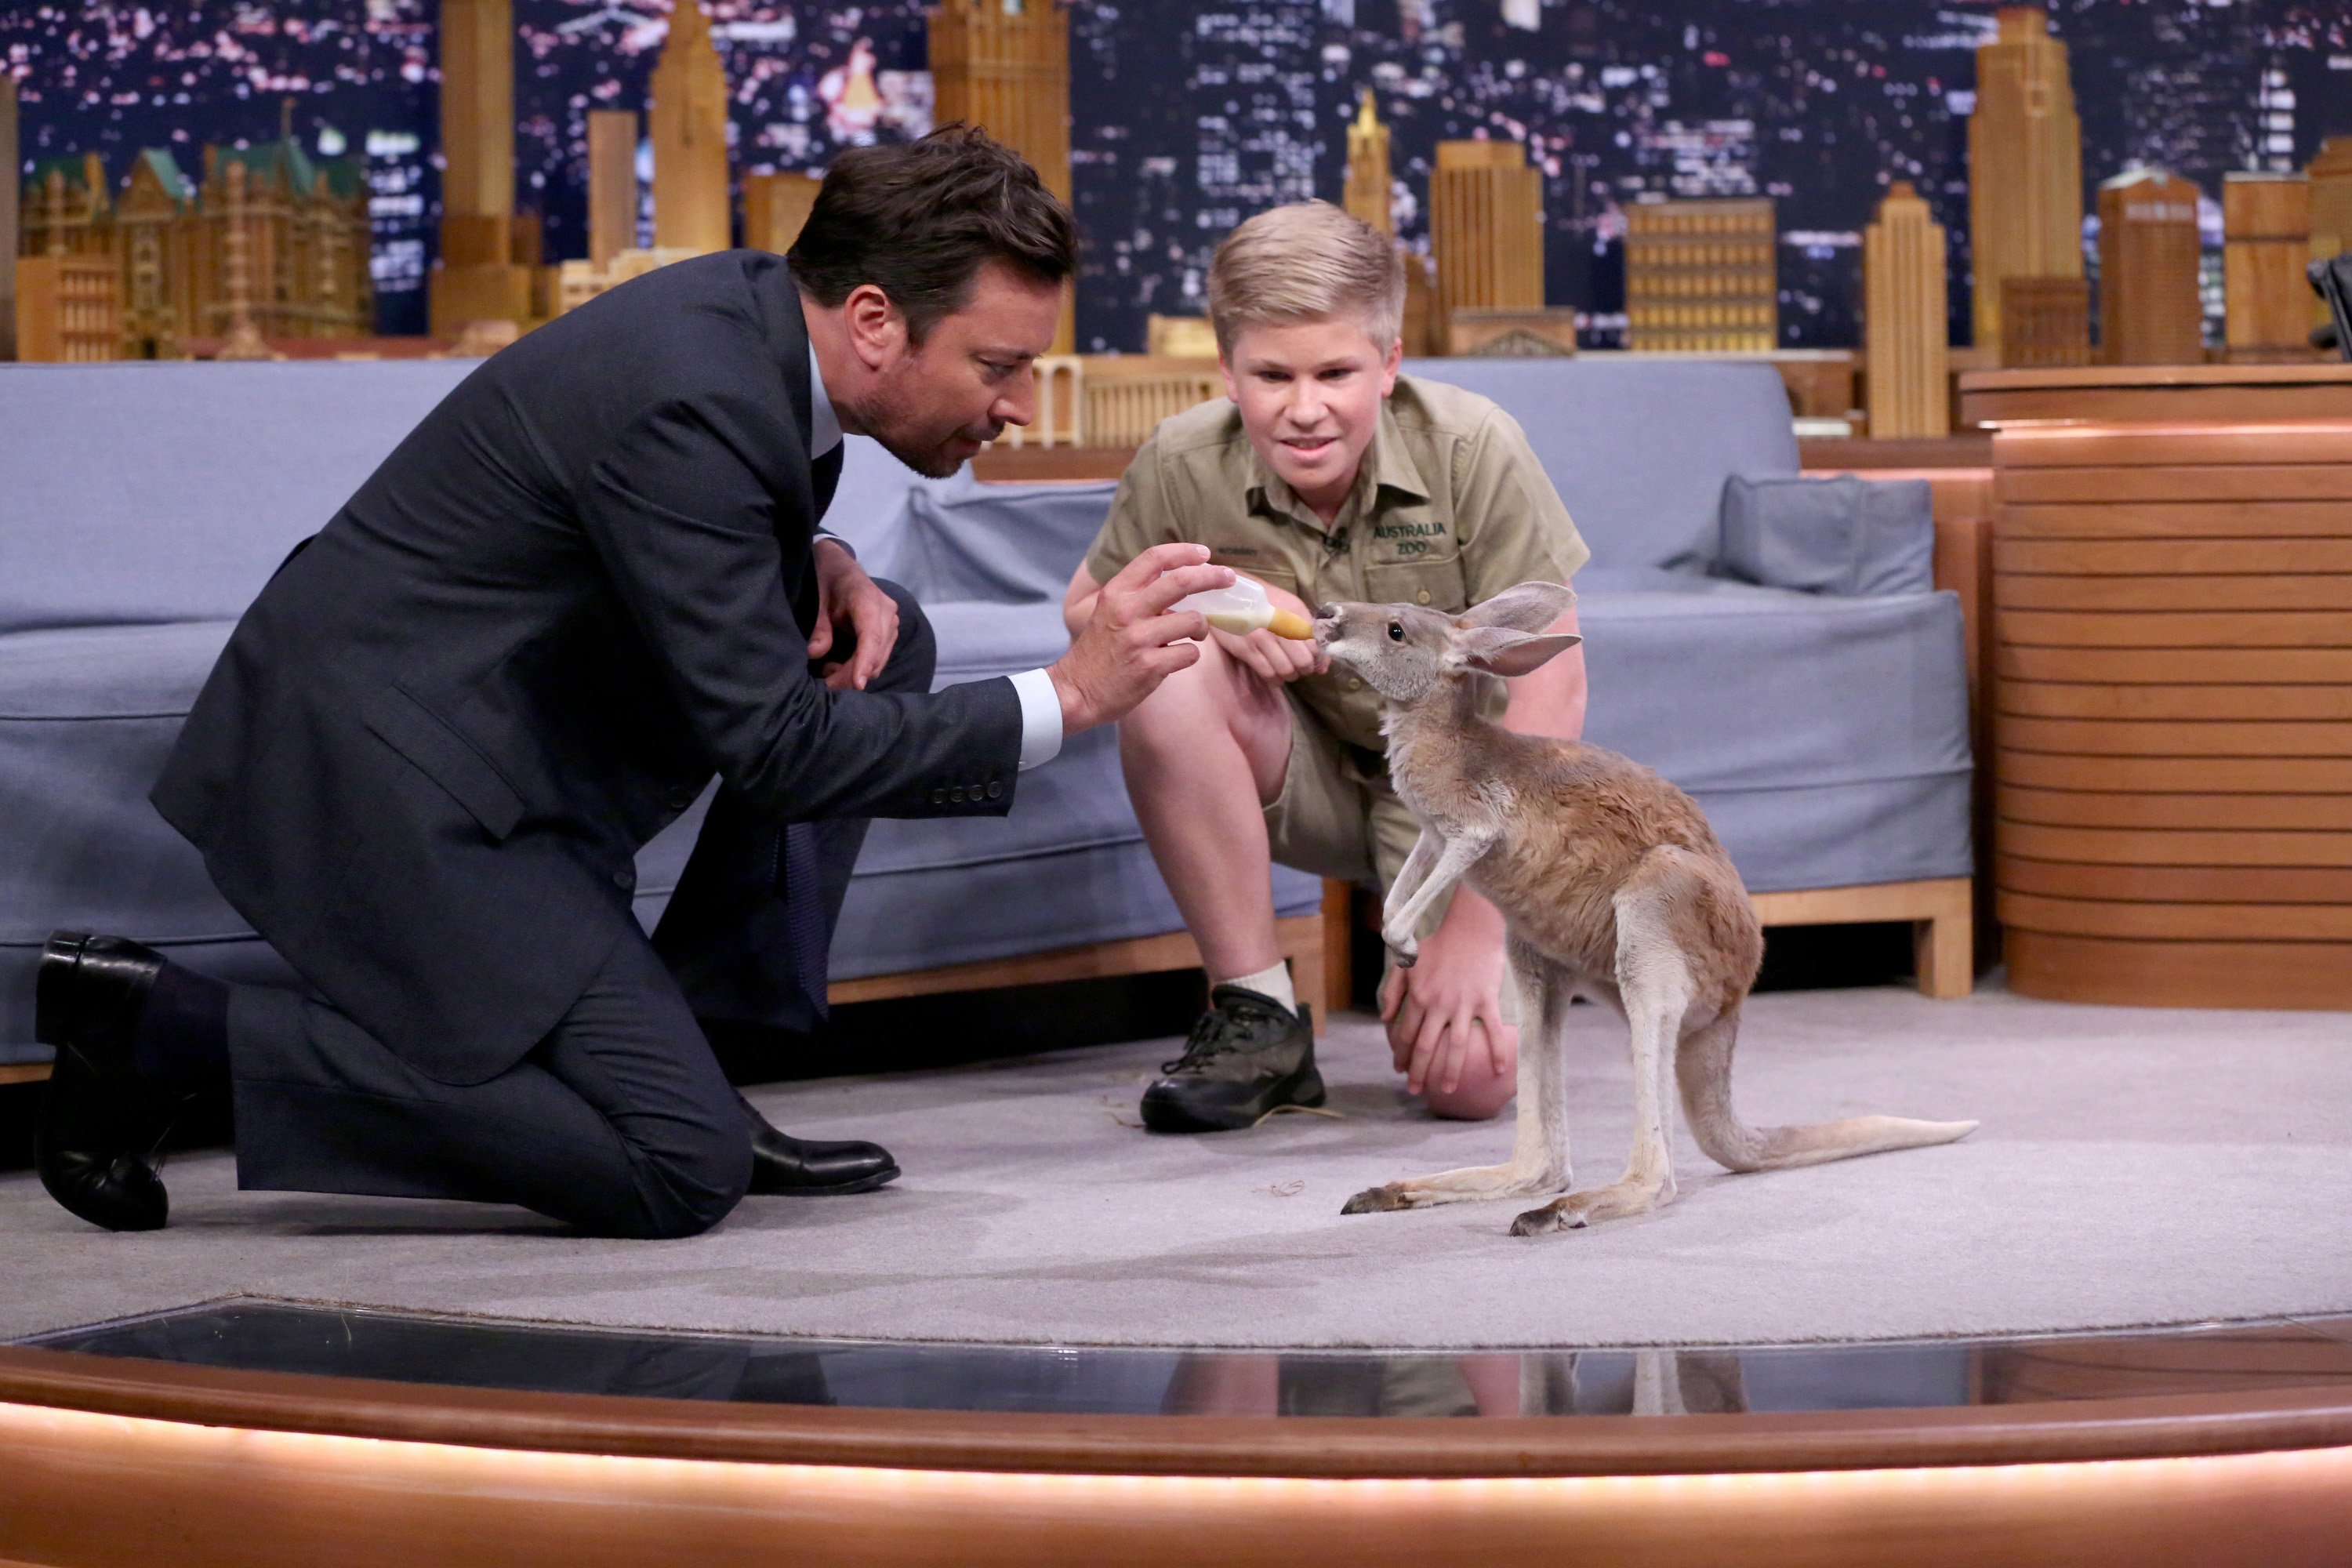 Animal expert Robert Irwin with host Jimmy Fallon during an interview with on June 7, 2017| Photo: Getty images